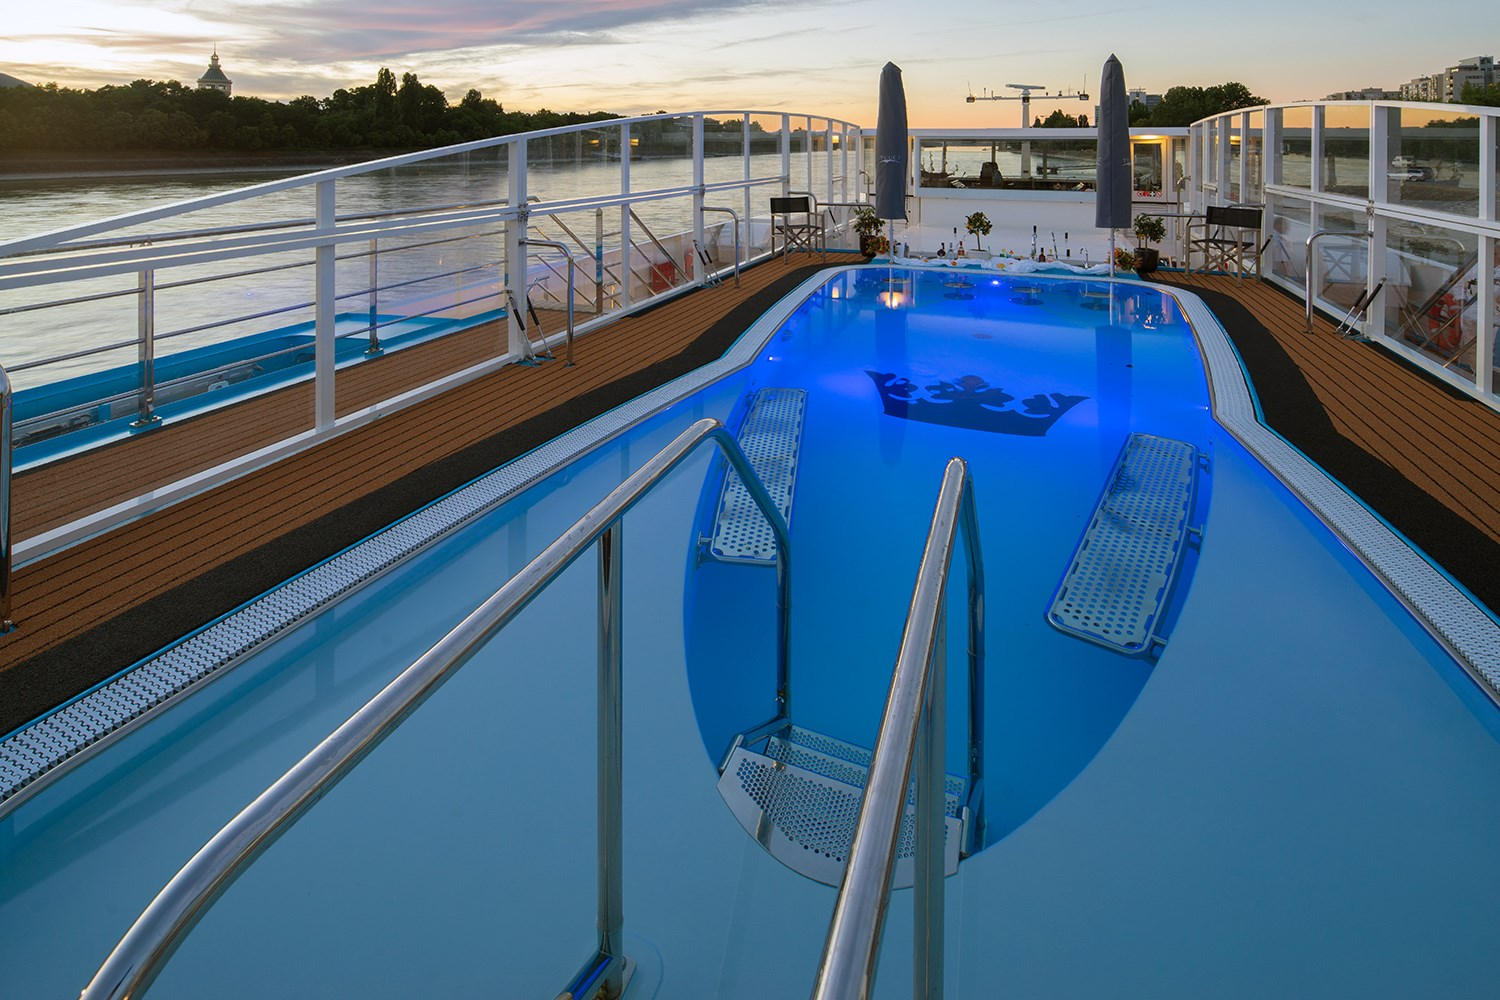 Amastella river cruise ship amawaterways for River cruise ships with swimming pool